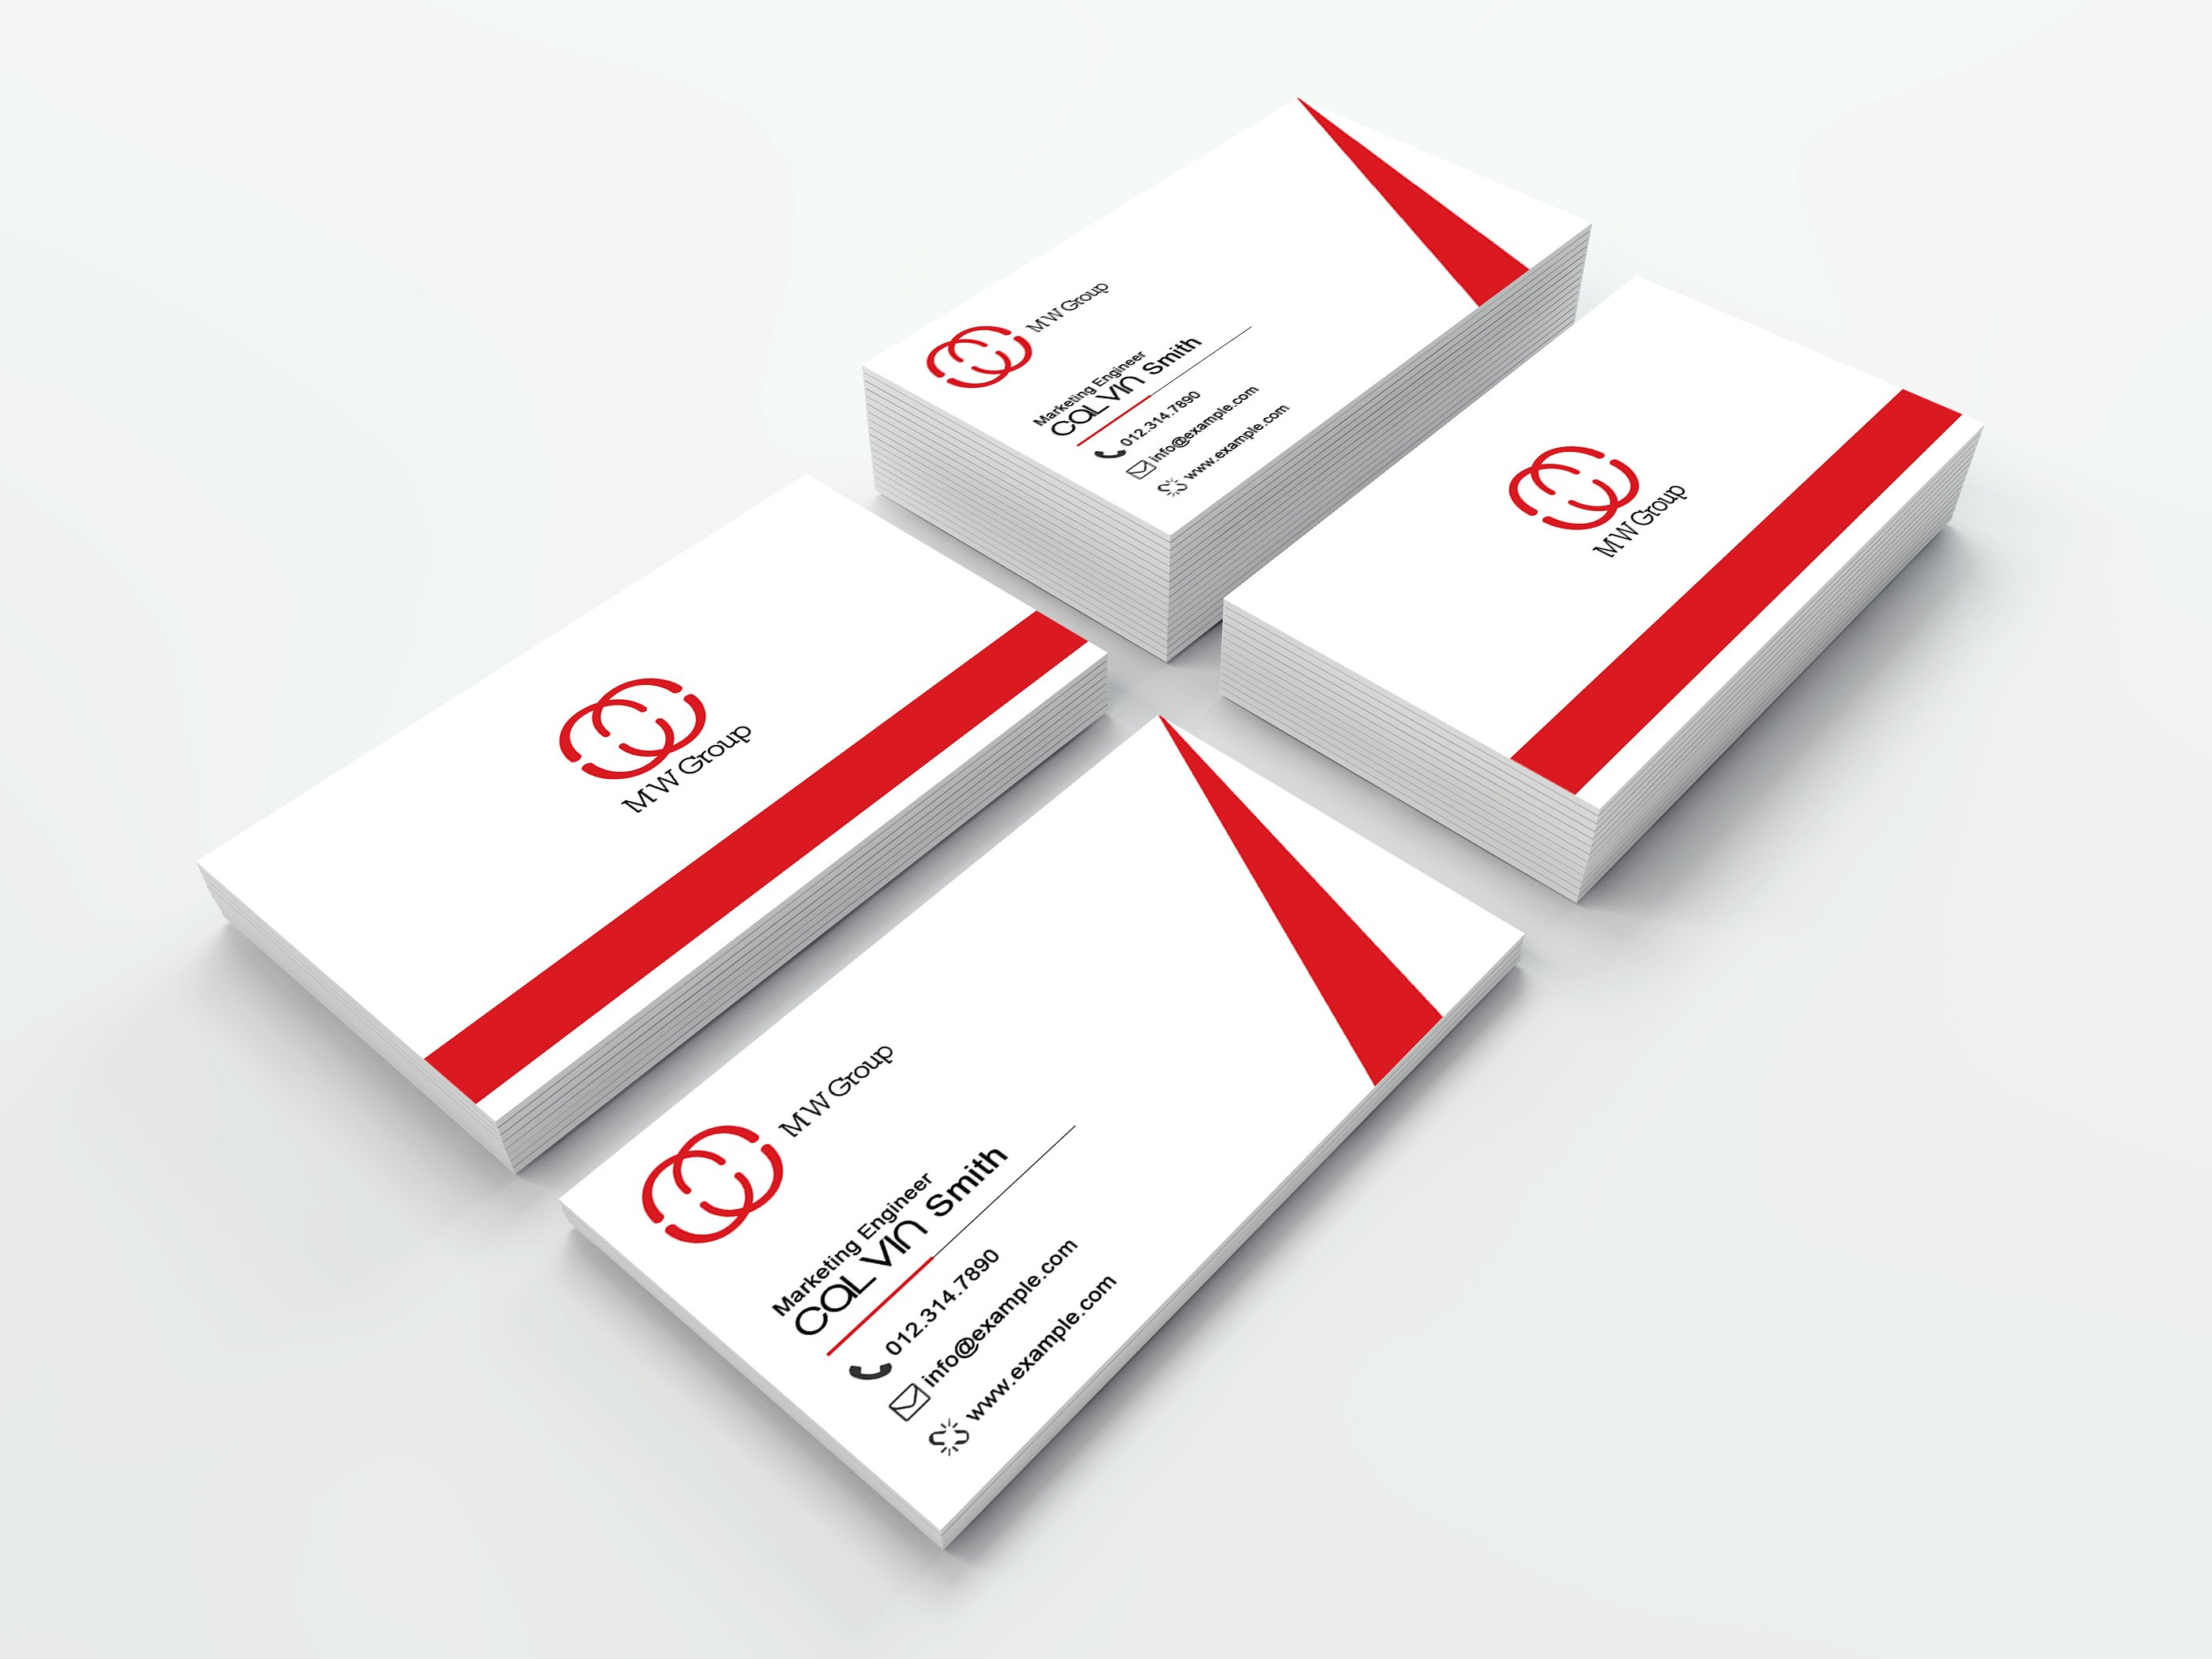 Corporate Digital Printing : Business Cards